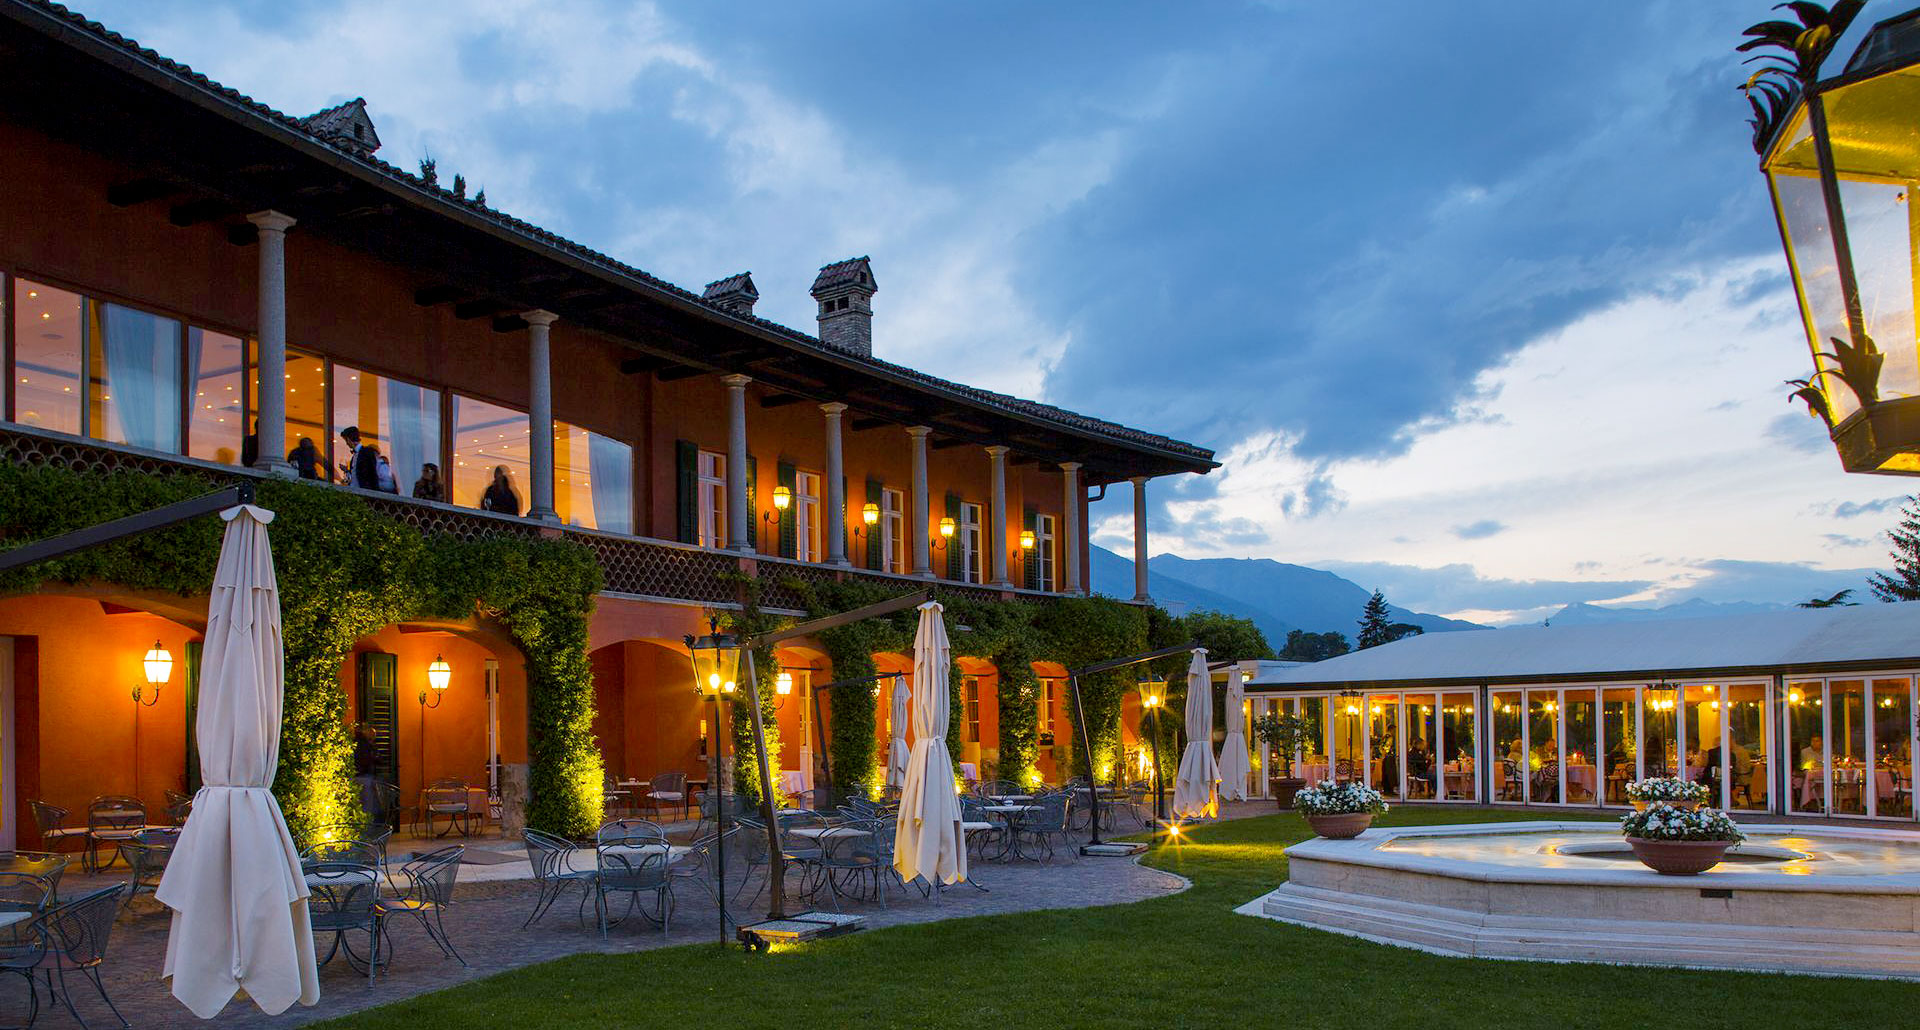 Villa Principe Leopoldo- boutique hotel in Switzerland